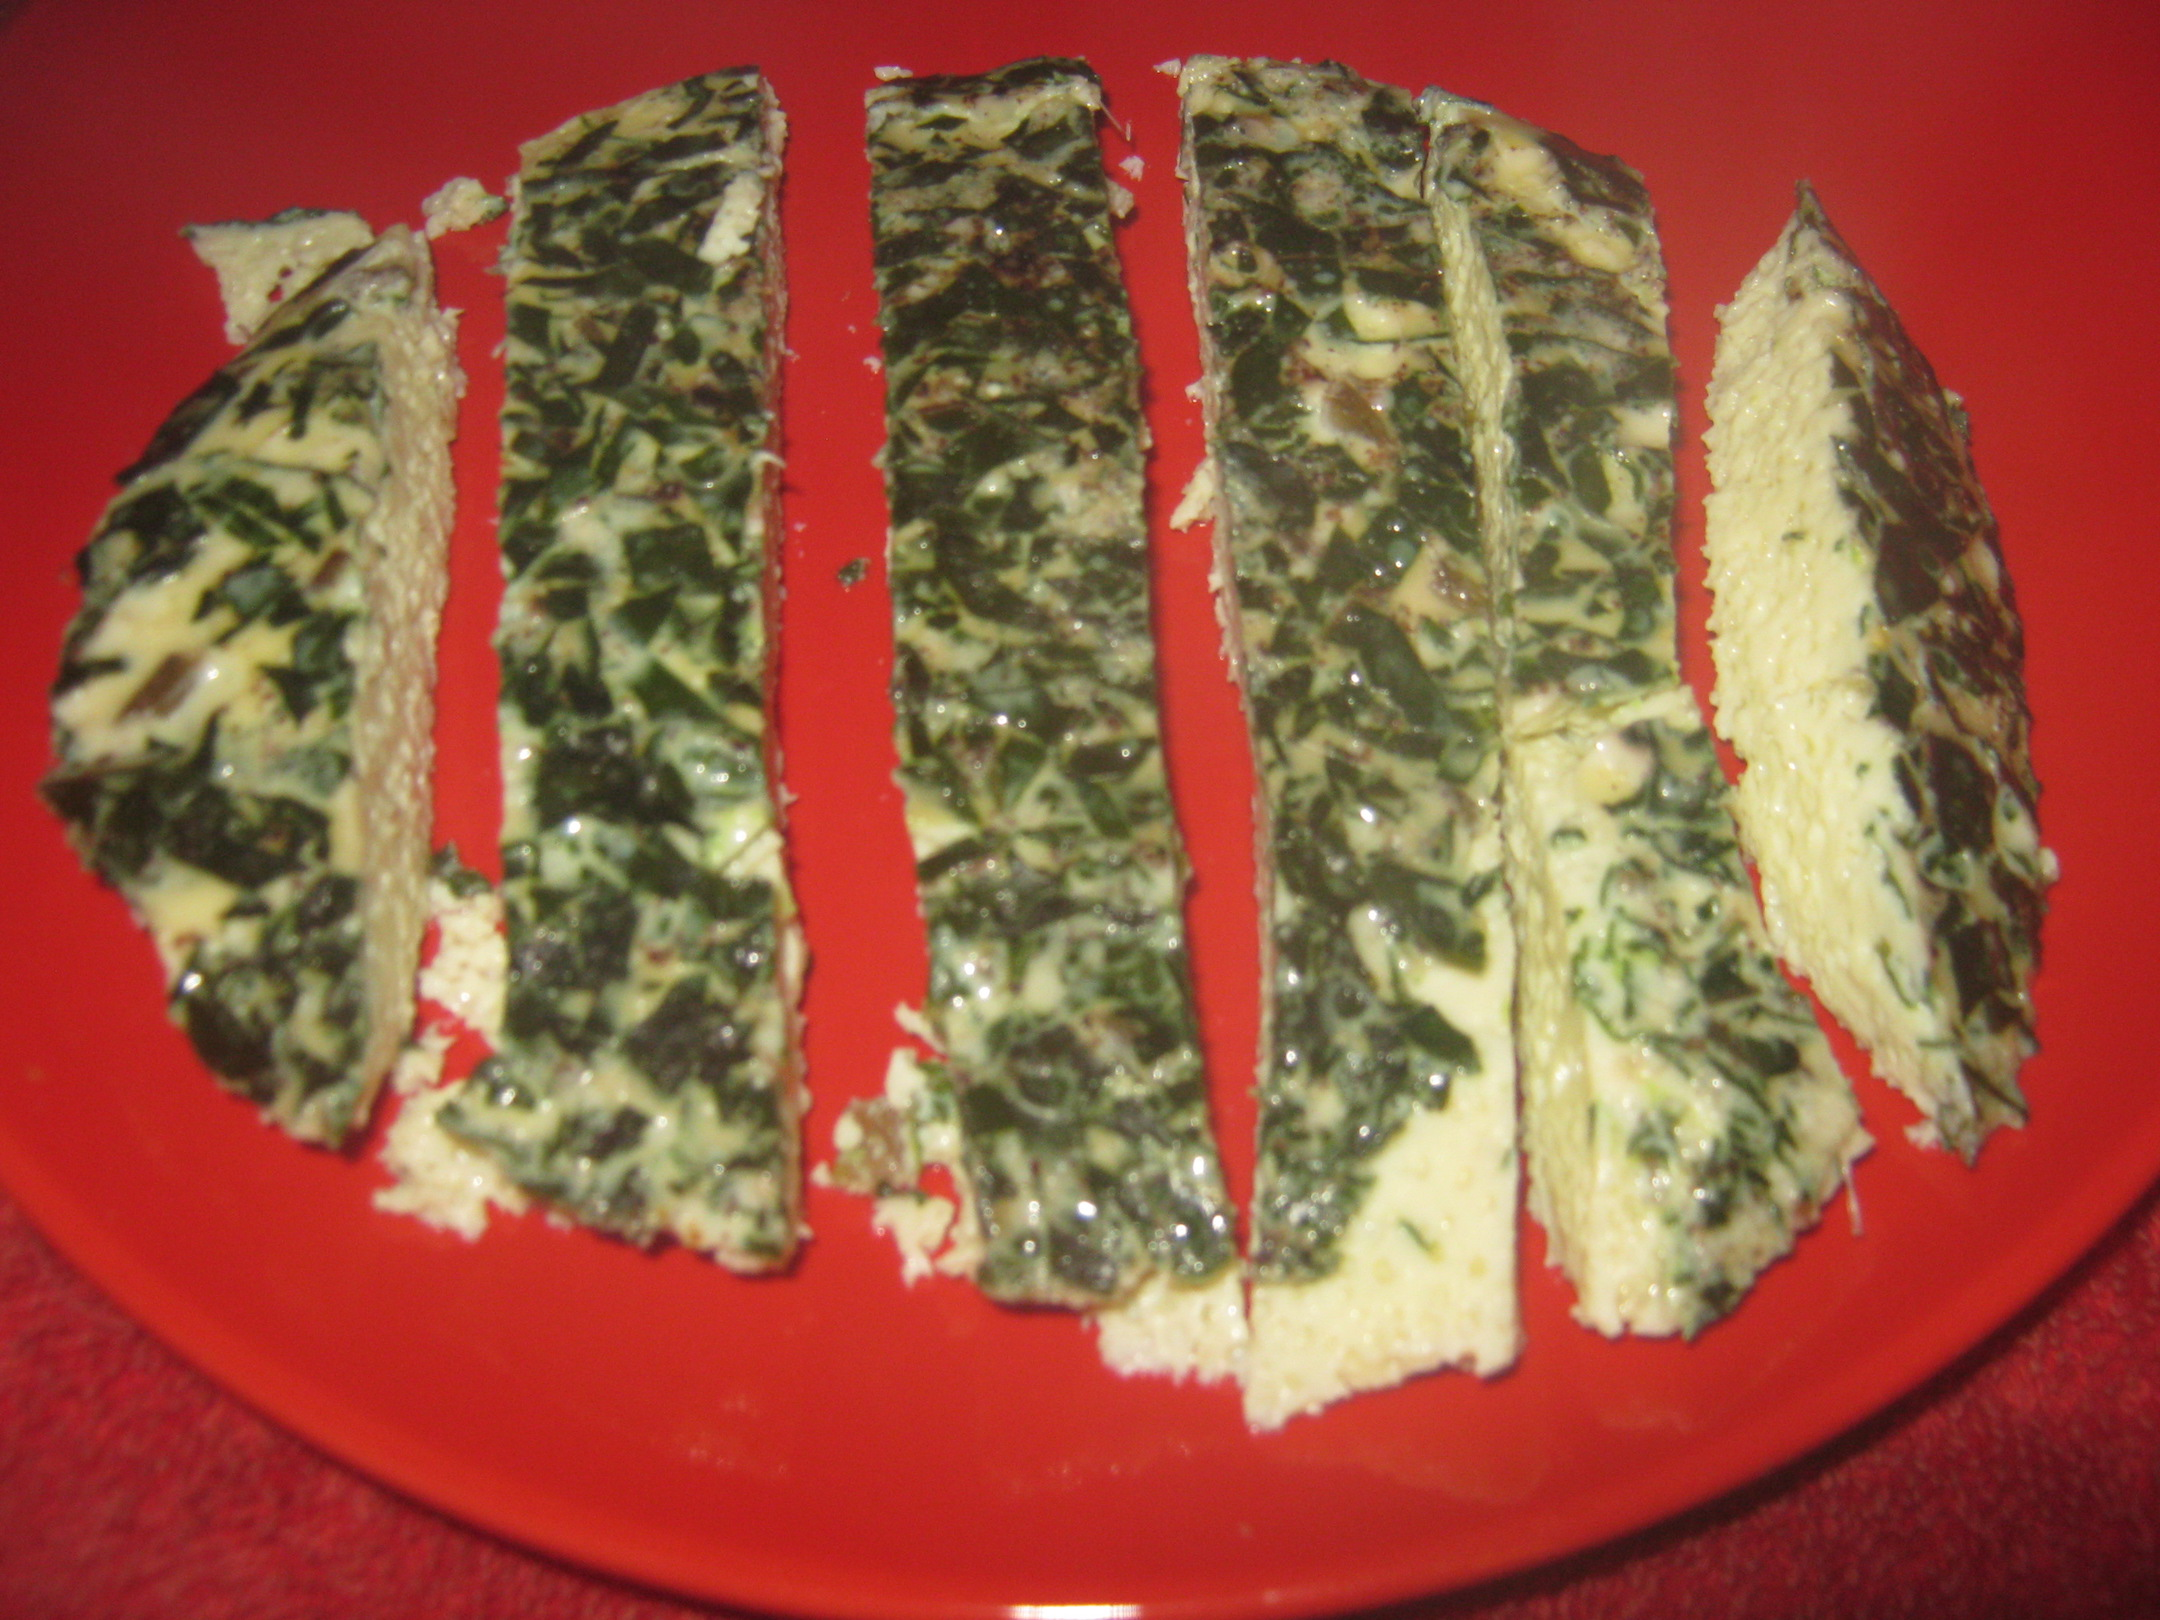 Green Eierstich slices on a red plate